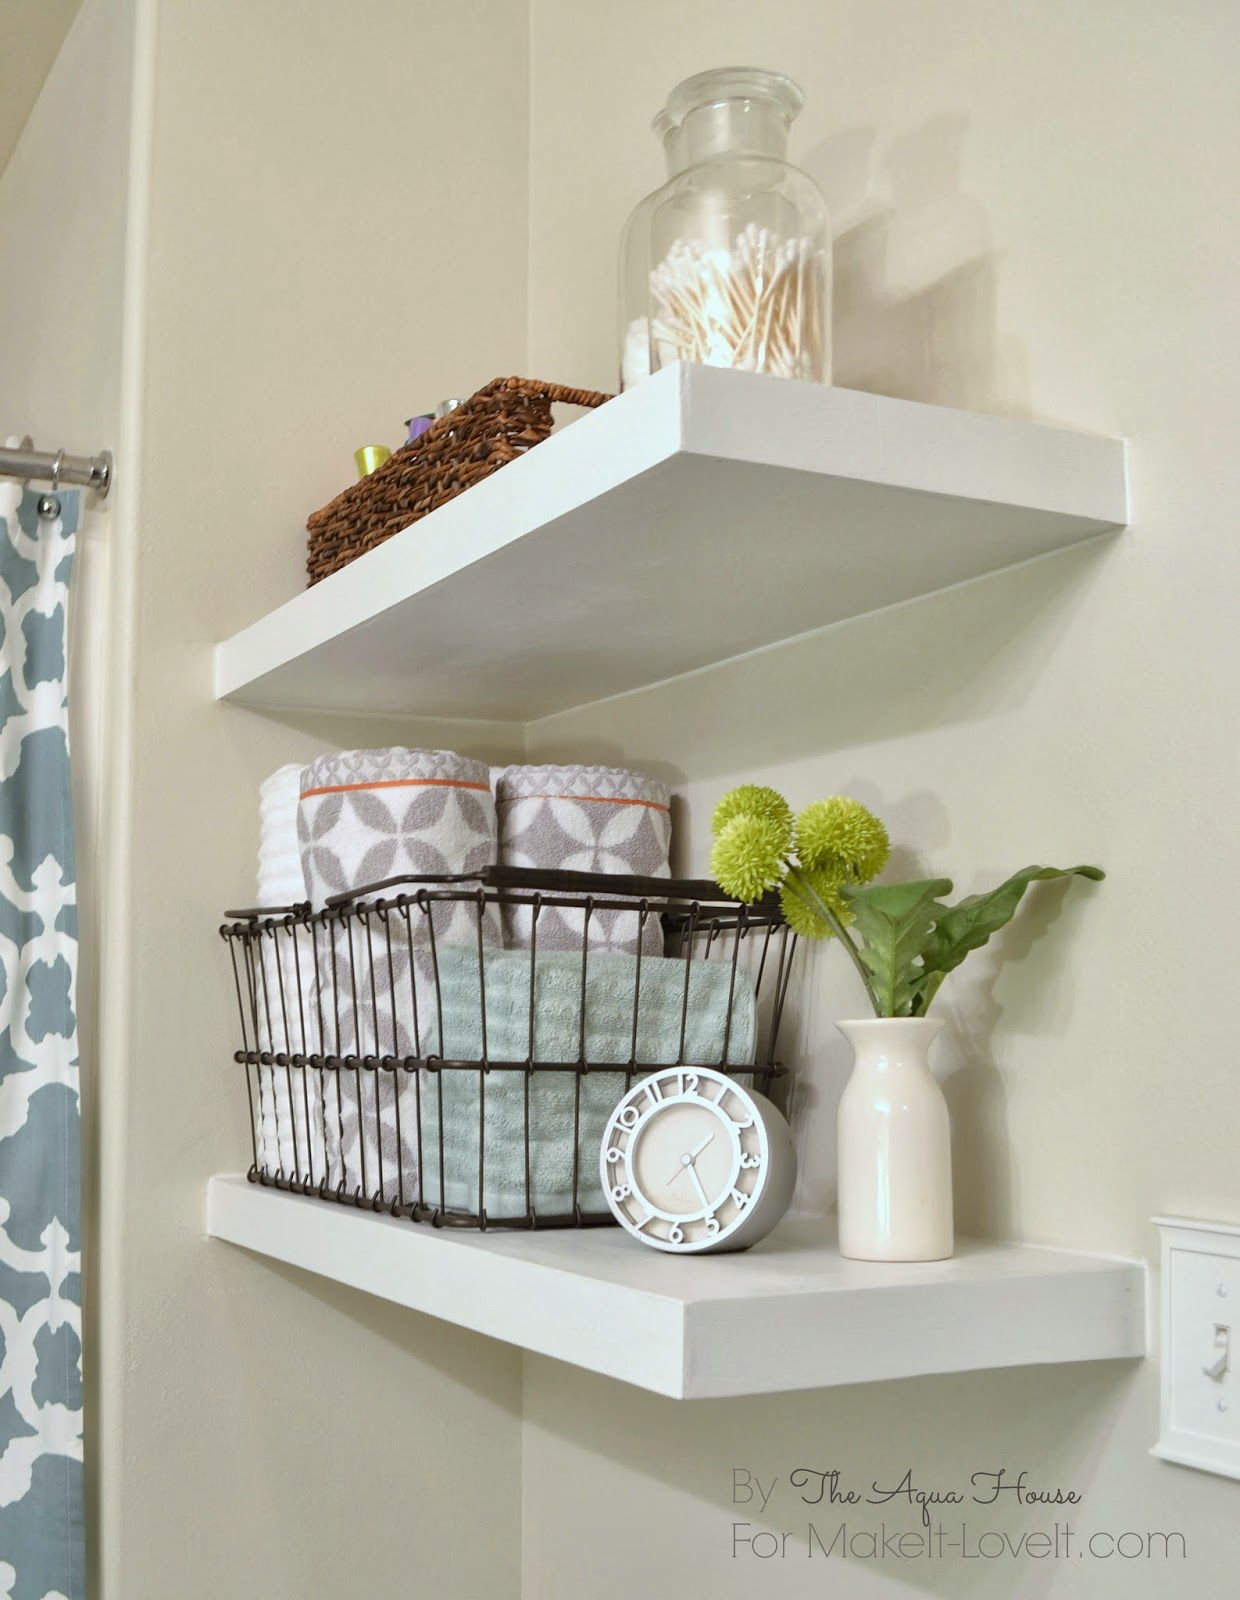 Diy Floating Shelvesa Great Storage Solution Make It And Love It